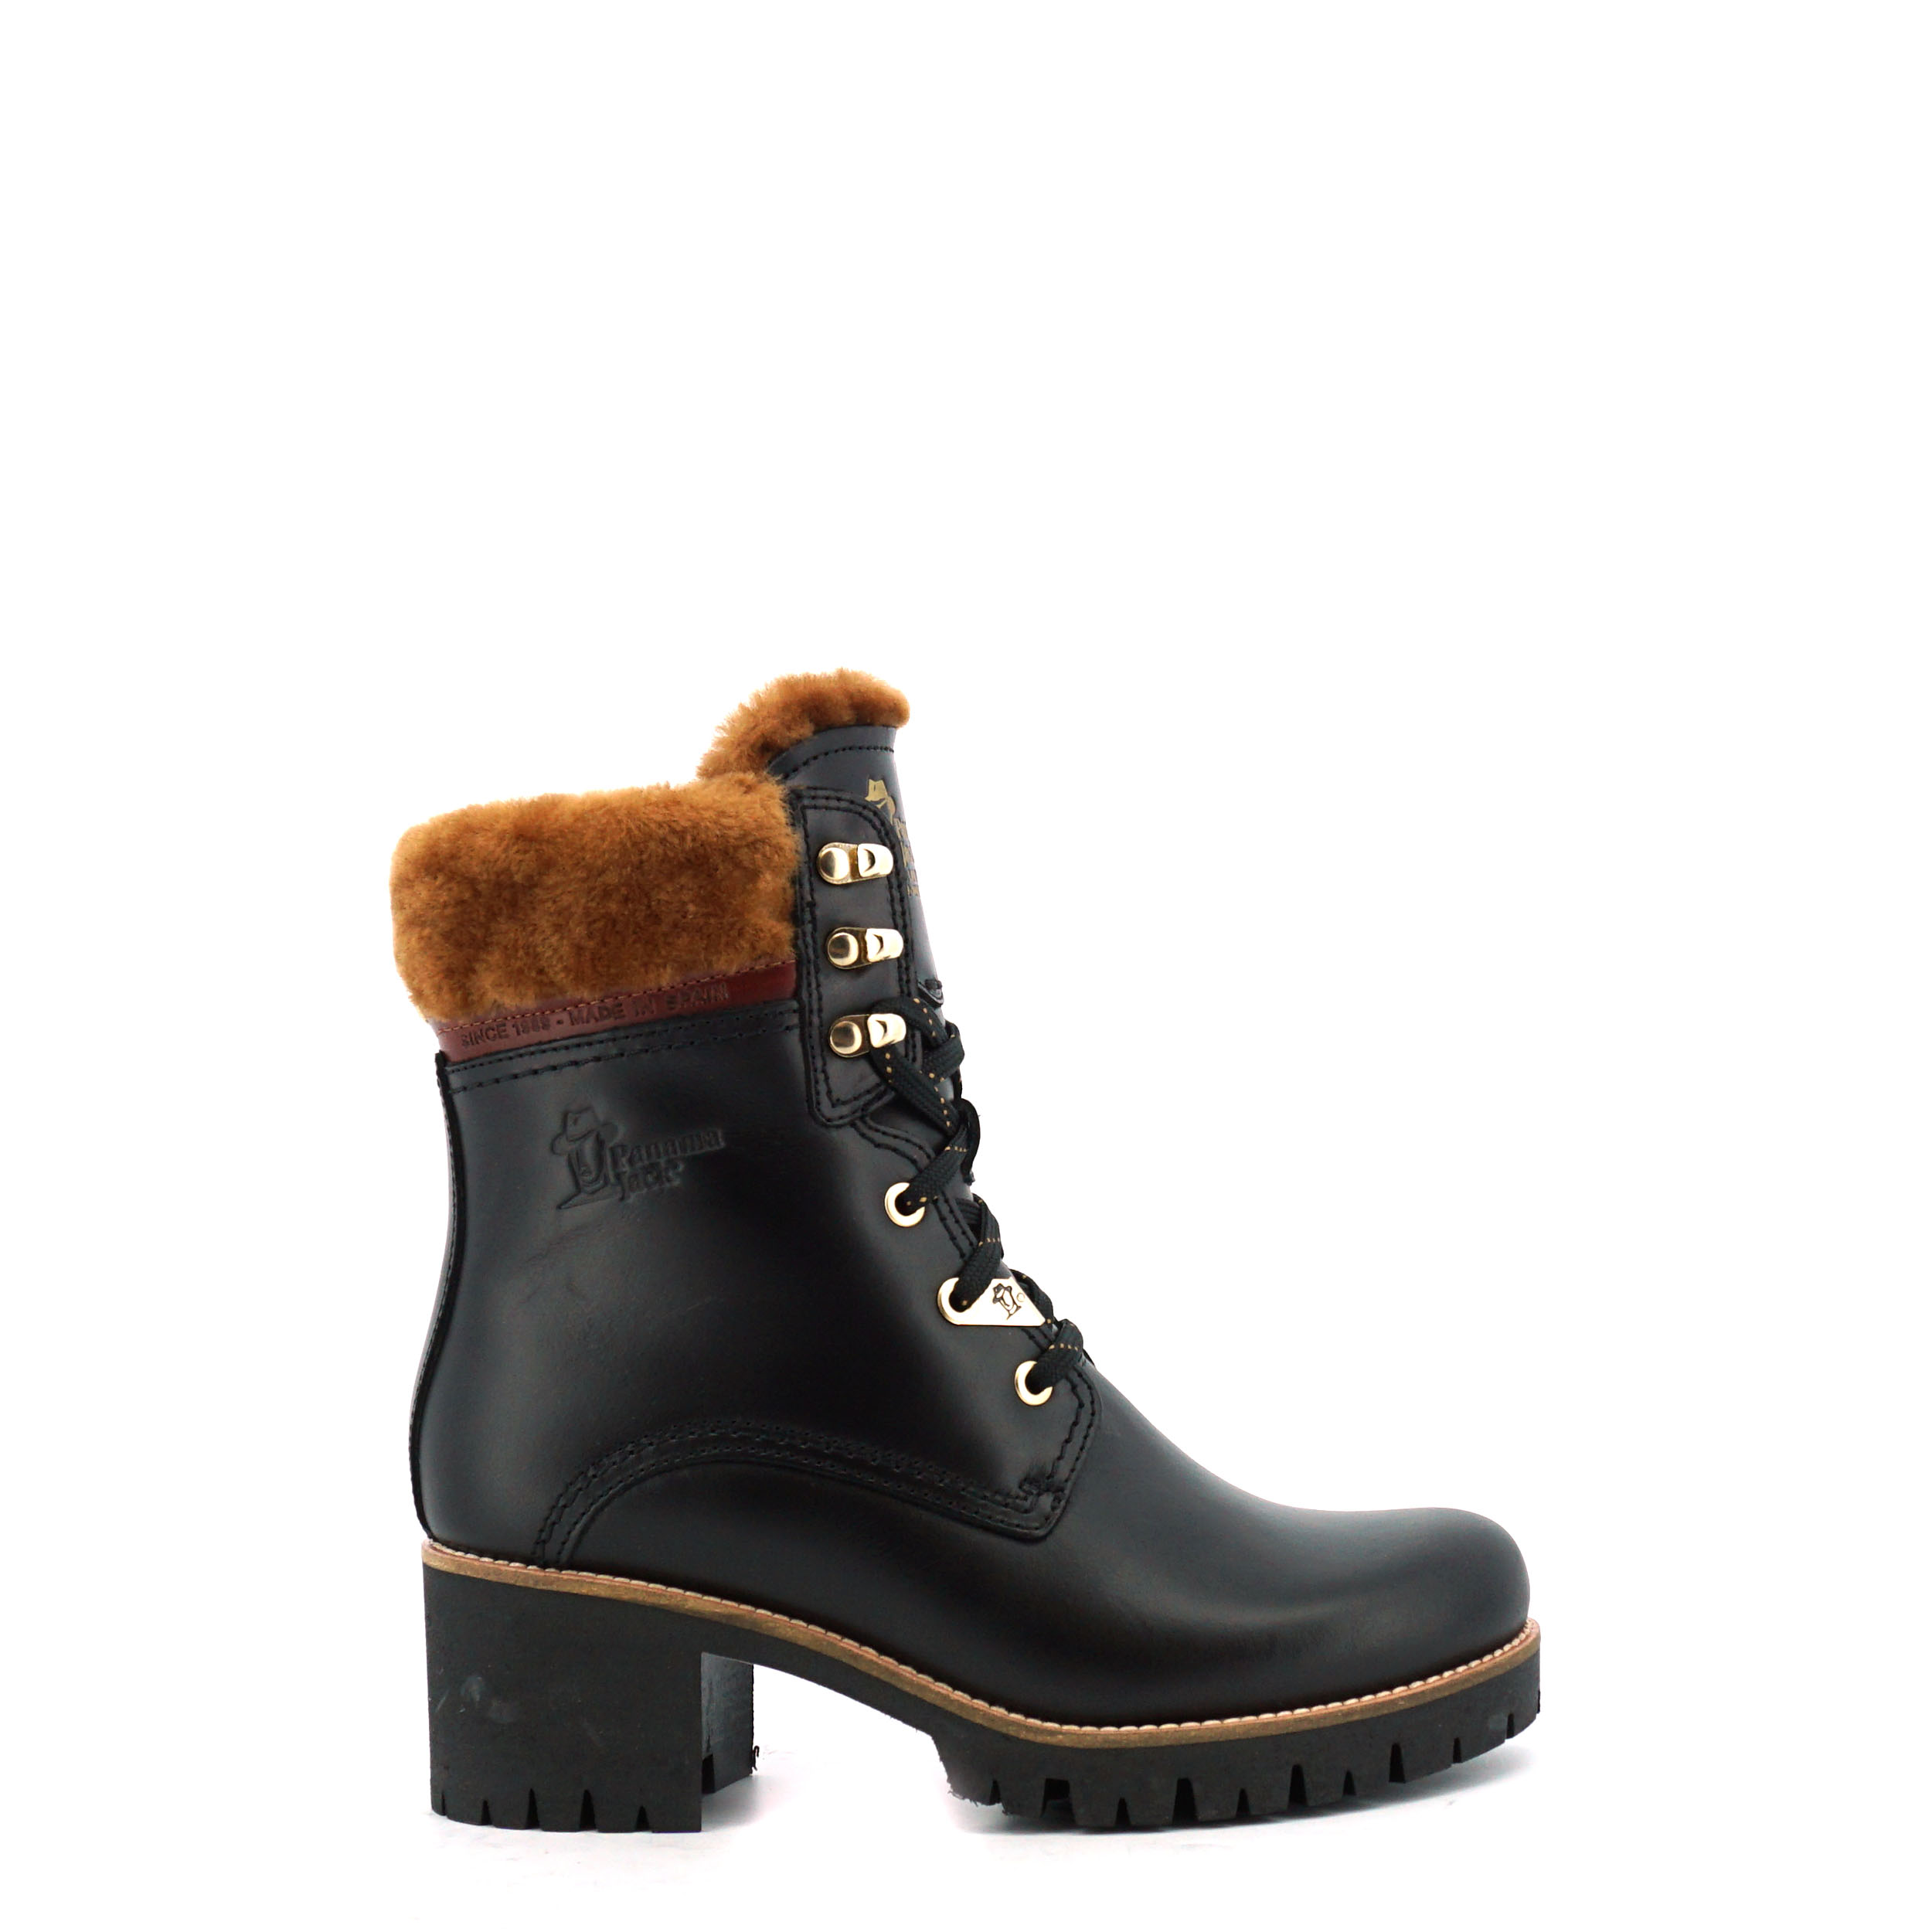 Dames Veterboot Panama Jack Phoebe Igloo Brooklyn b1 zwart